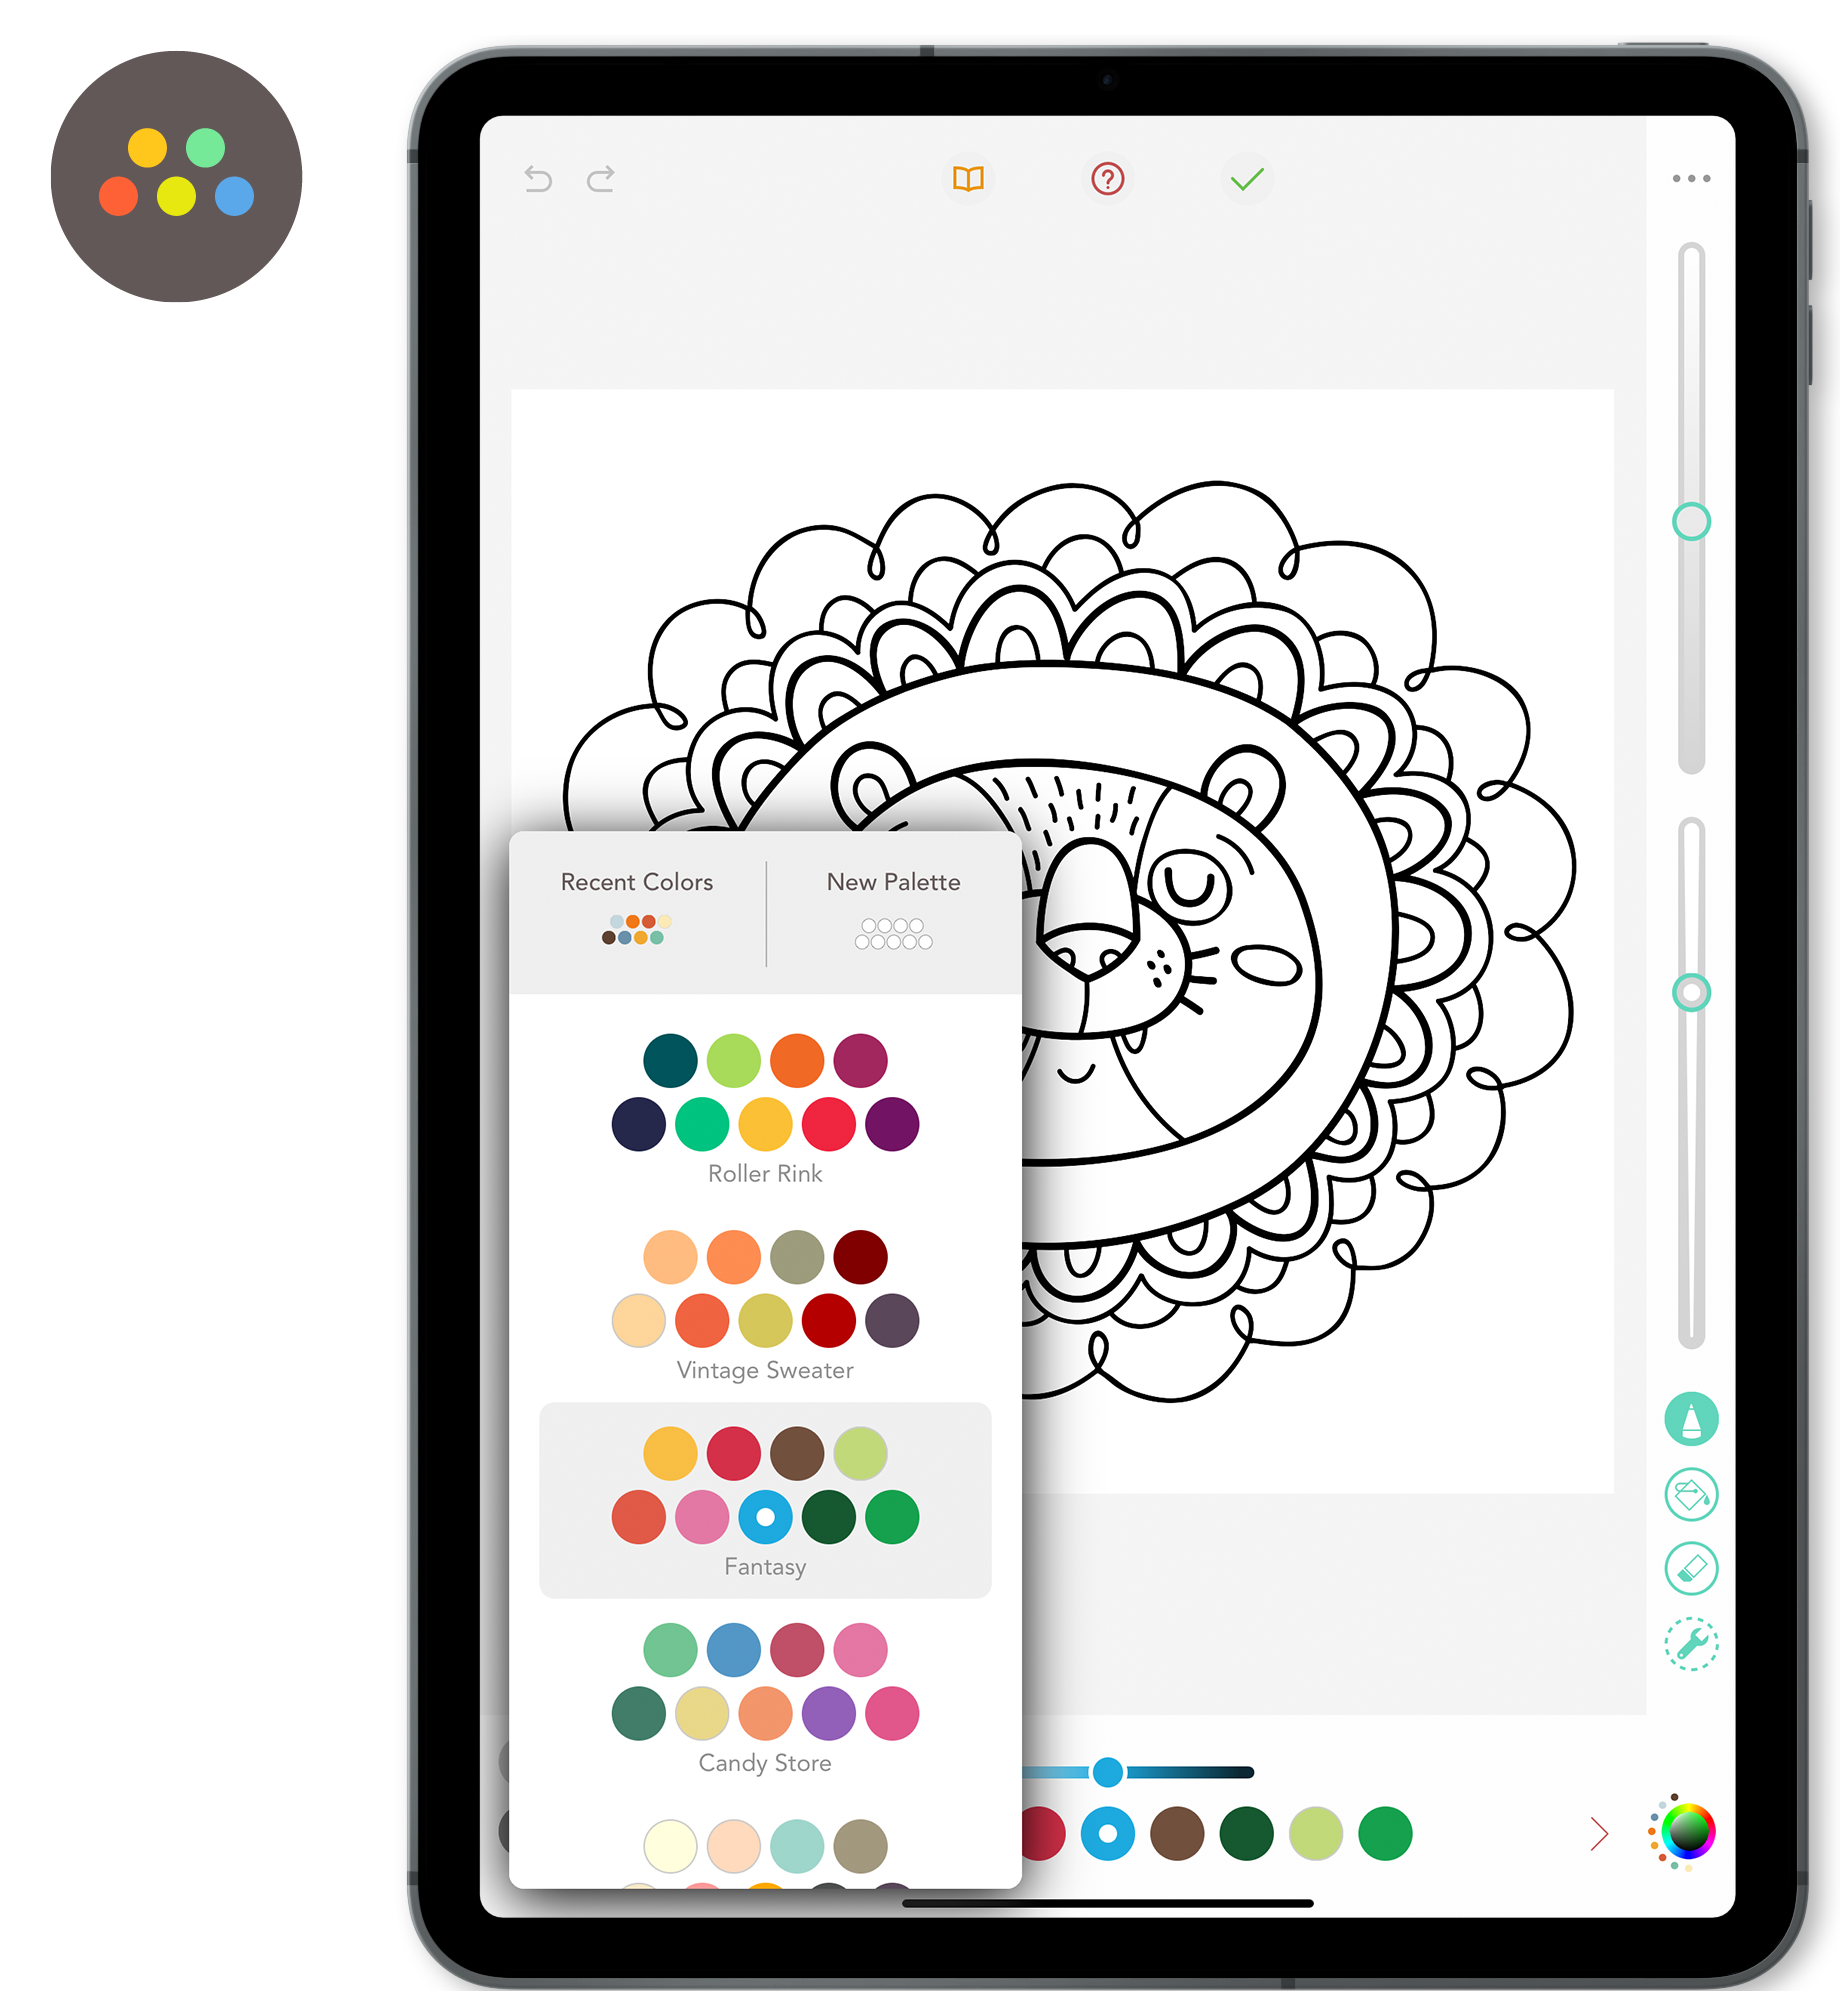 Color Palette Menu - The color palette menu is where you find the colors to help bring your chosen design to life.Don't remember which color you used previously? Look in Recent Colors or use the Sample tool by selecting the color in your design you want to use again.